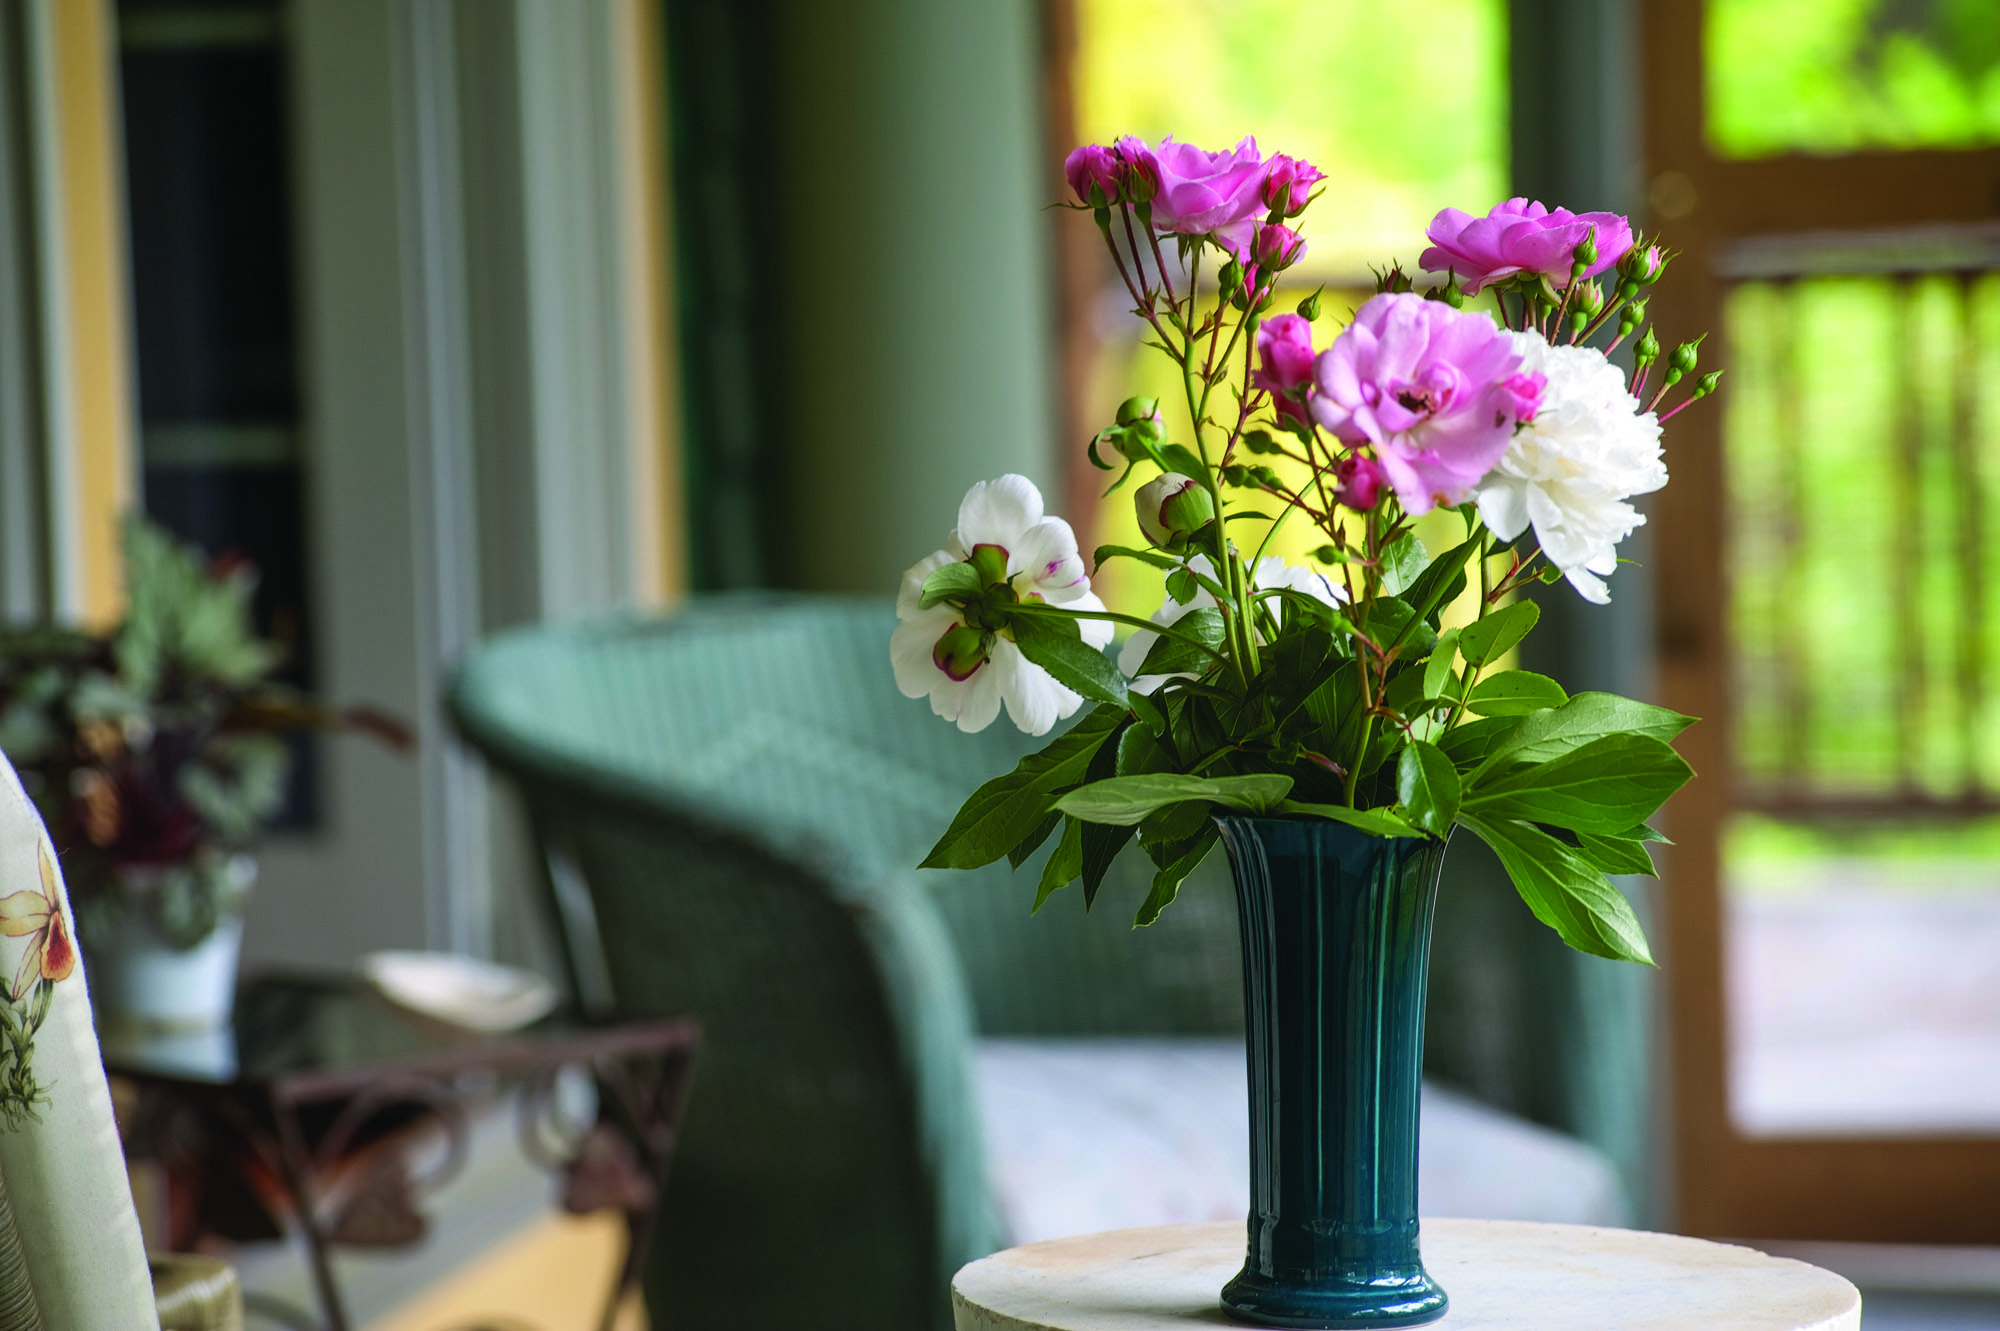 'Bonica' roses join up with herbaceous peonies to create an impromptu bouquet in a vintage Fiesta vase, on the porch.